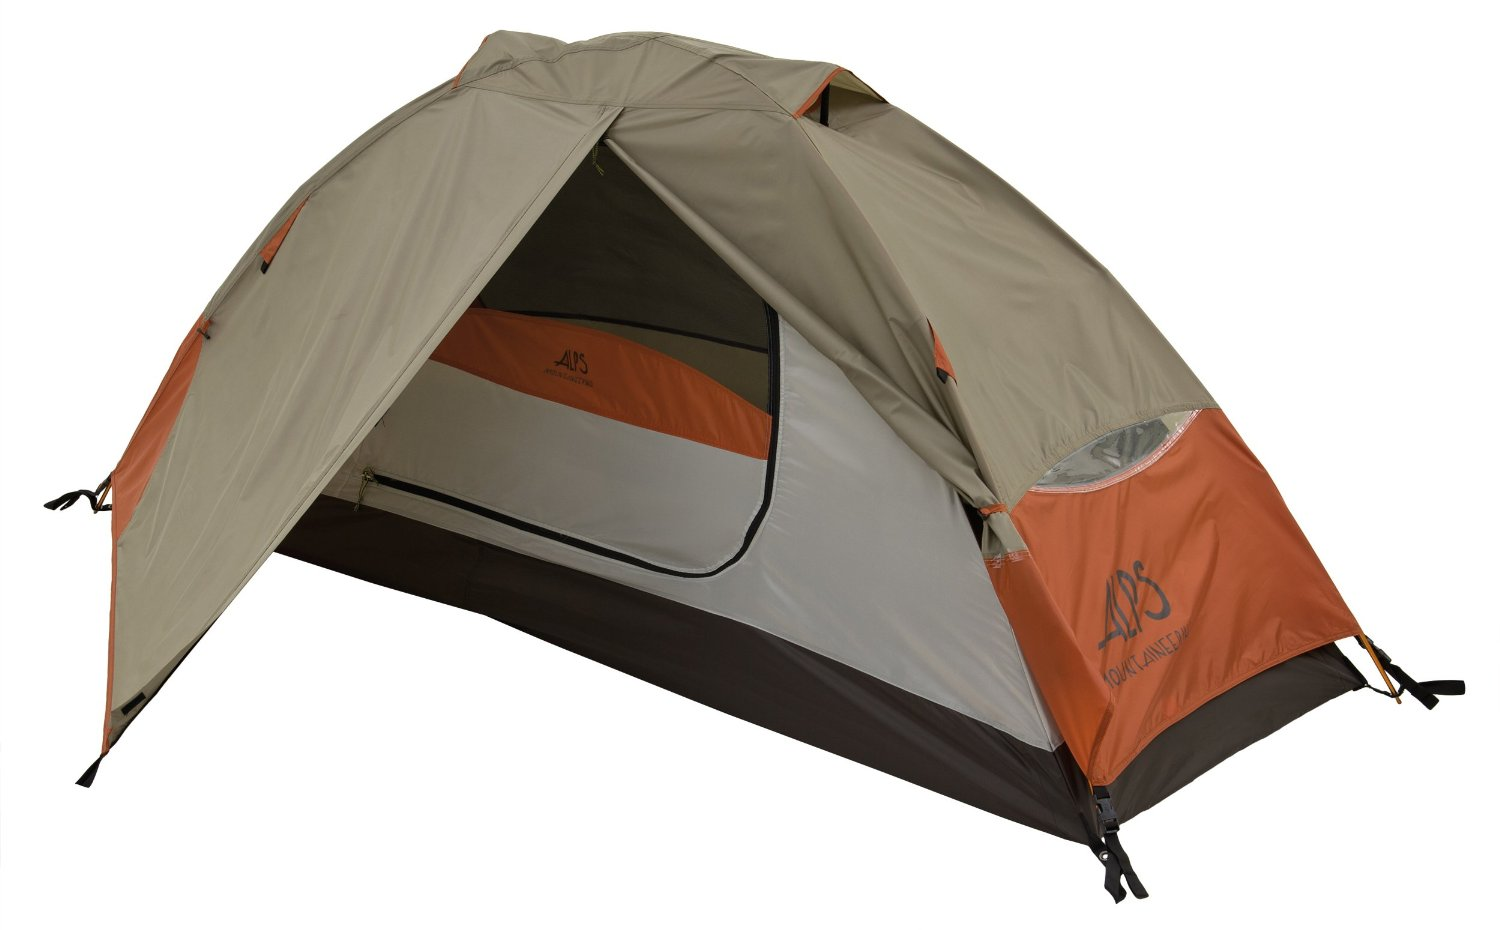 Alps Mountaineering Lynx 1 Tent Review